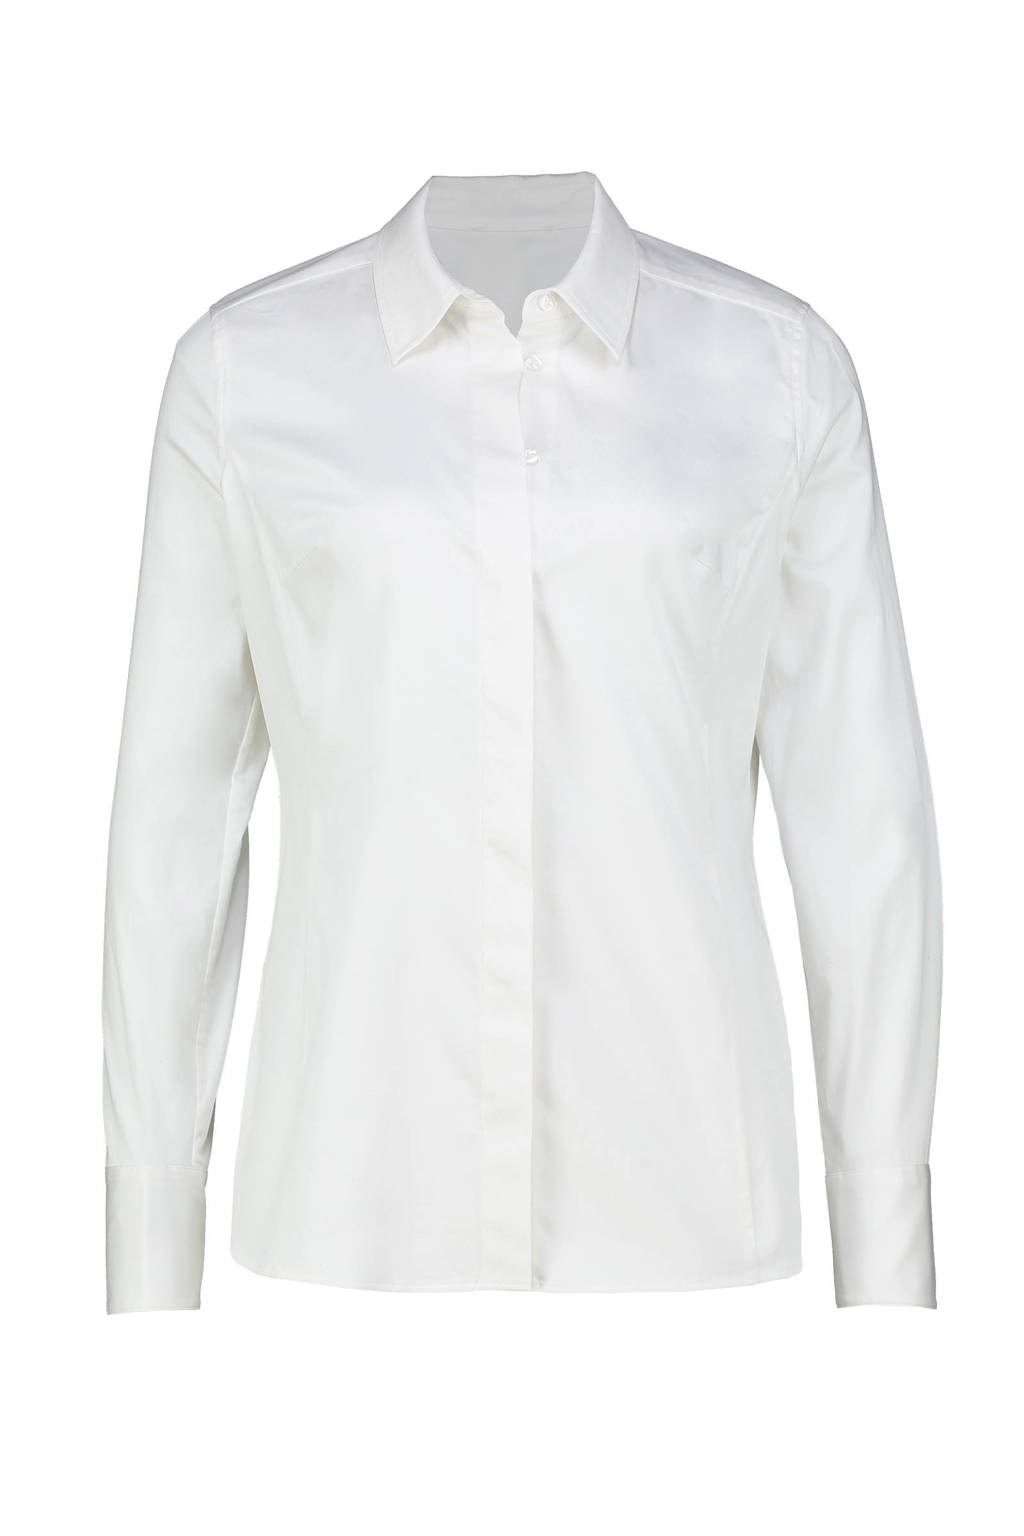 Expresso basis blouse in stretchkatoen wit, Wit